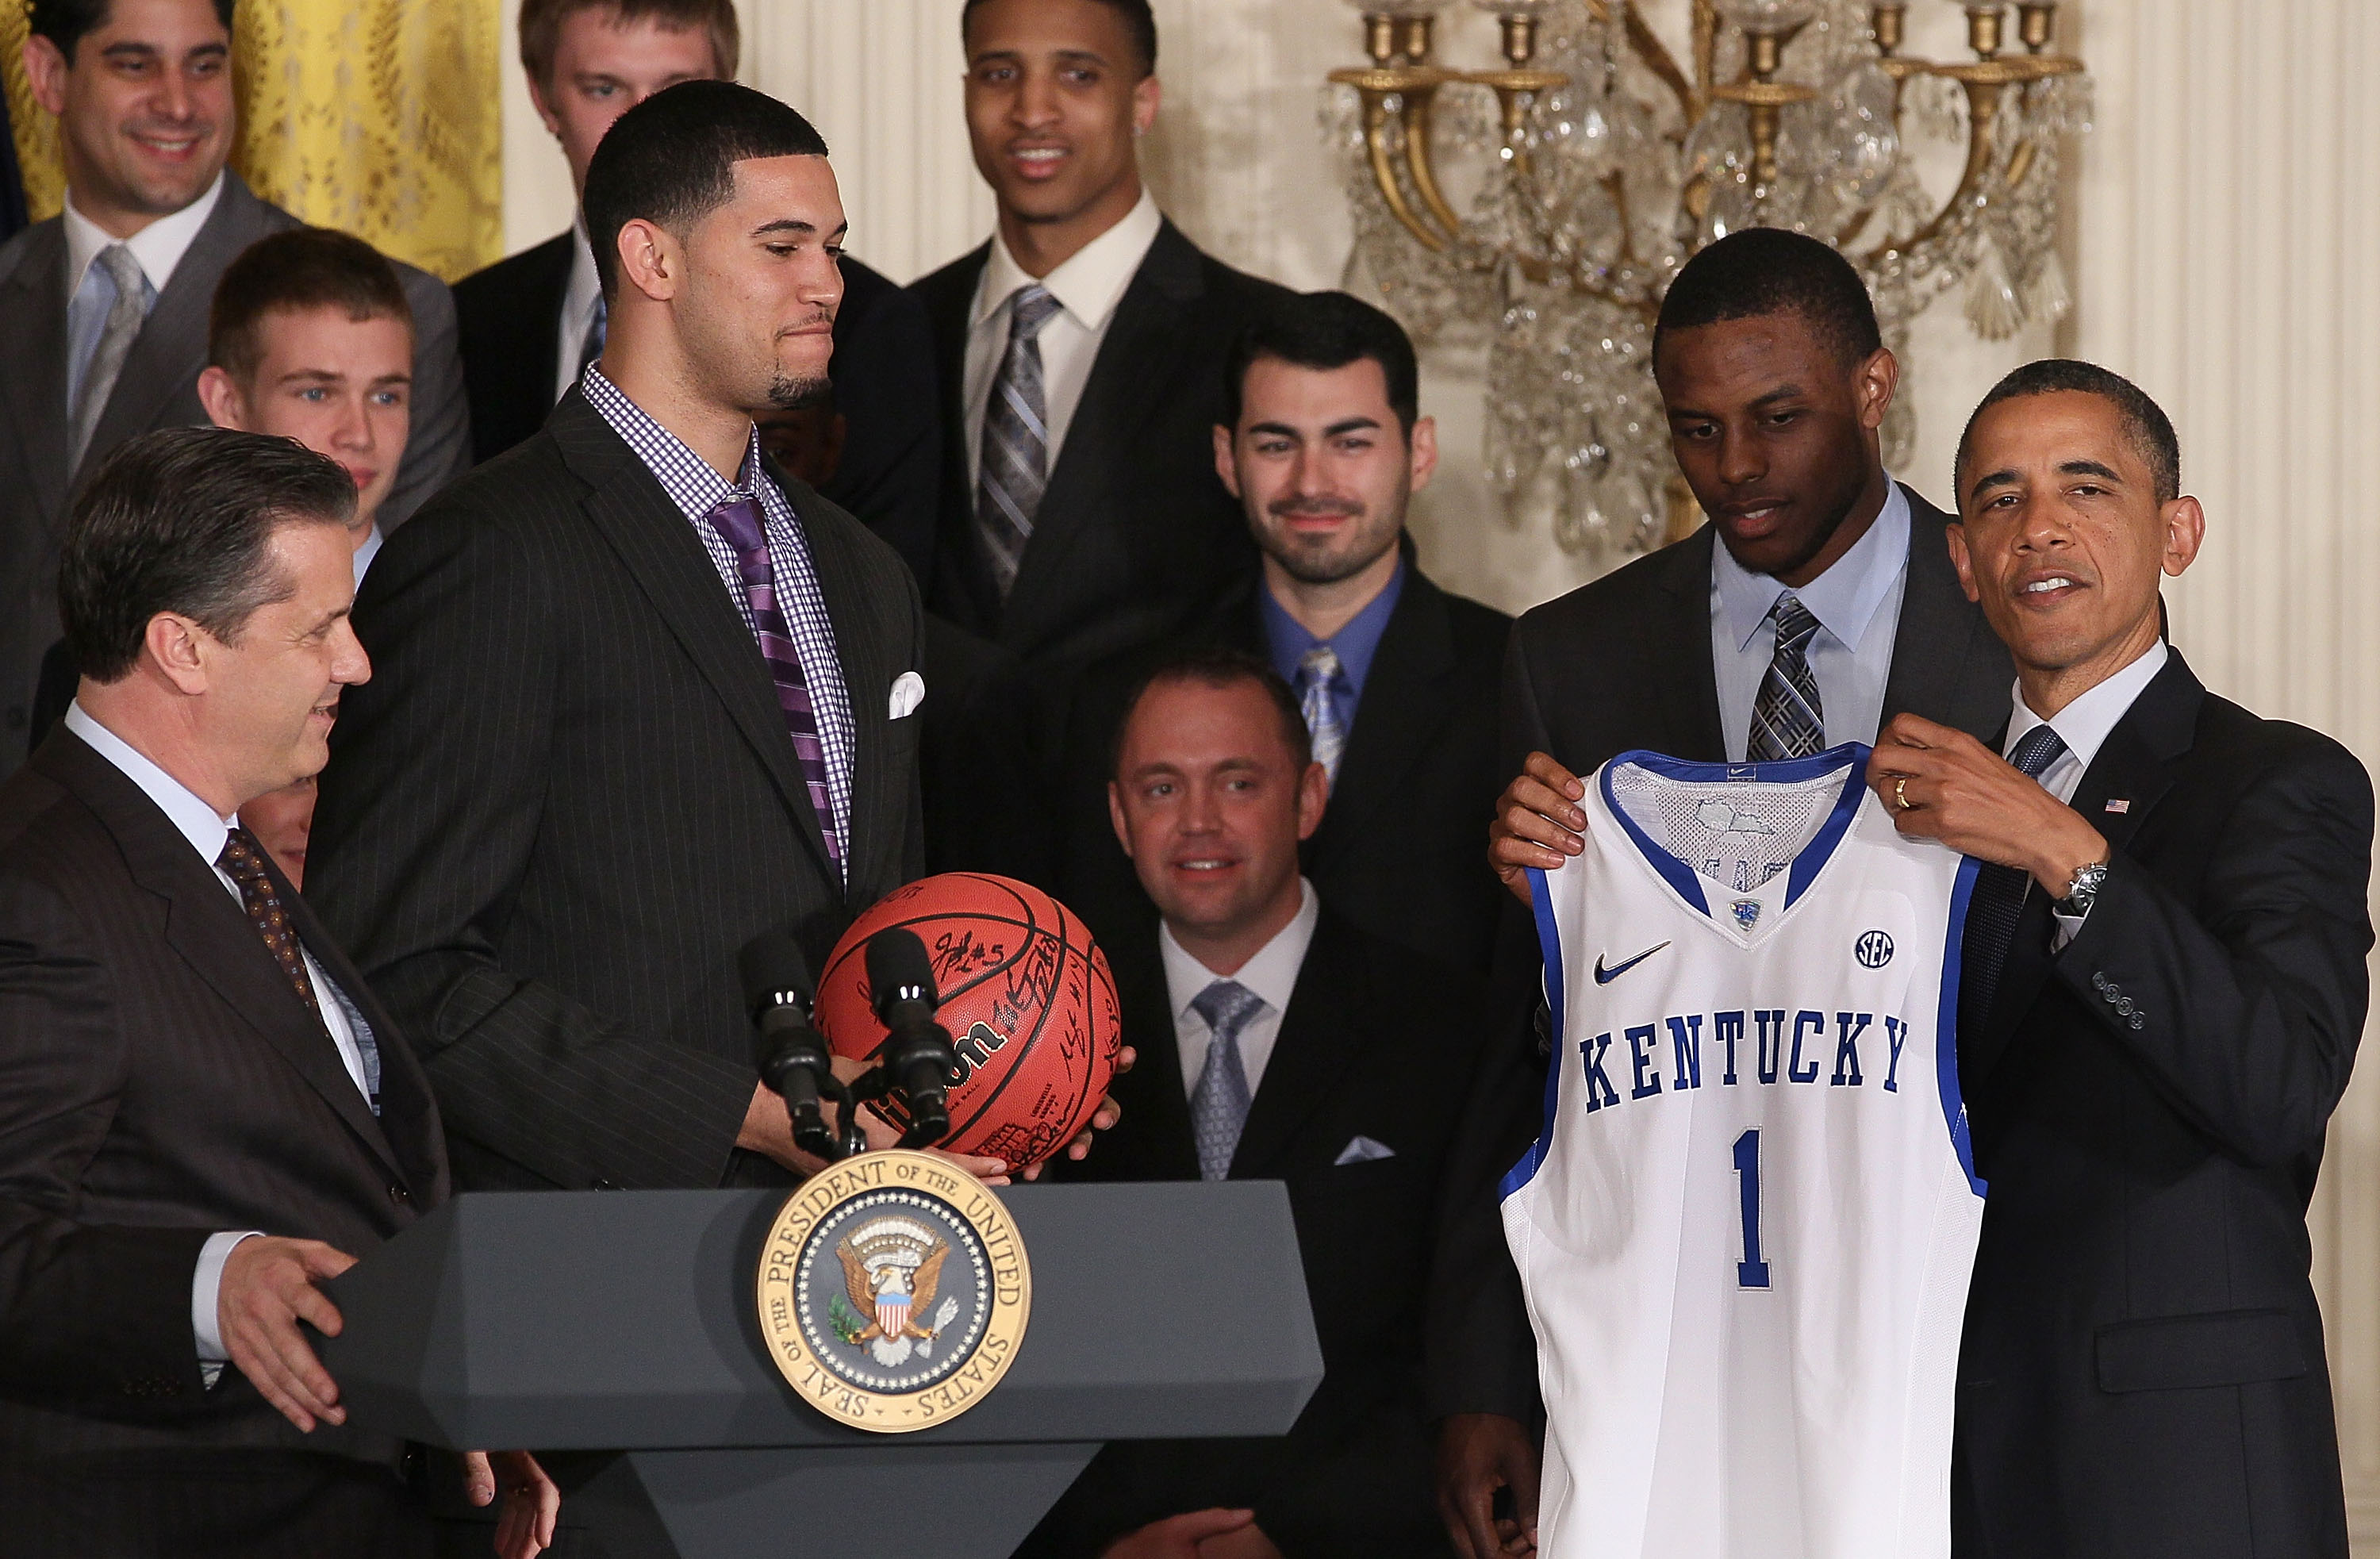 President Barack Obama holds a jersey given to him by the University of Kentucky basketball team during an event in the East Room at the White House, on May 4, 2012. President Obama picked Kentucky to win the NCAA basketball  national championship this year on his bracket that he filled out for ESPN. Photo by Mark Wilson/Getty Images